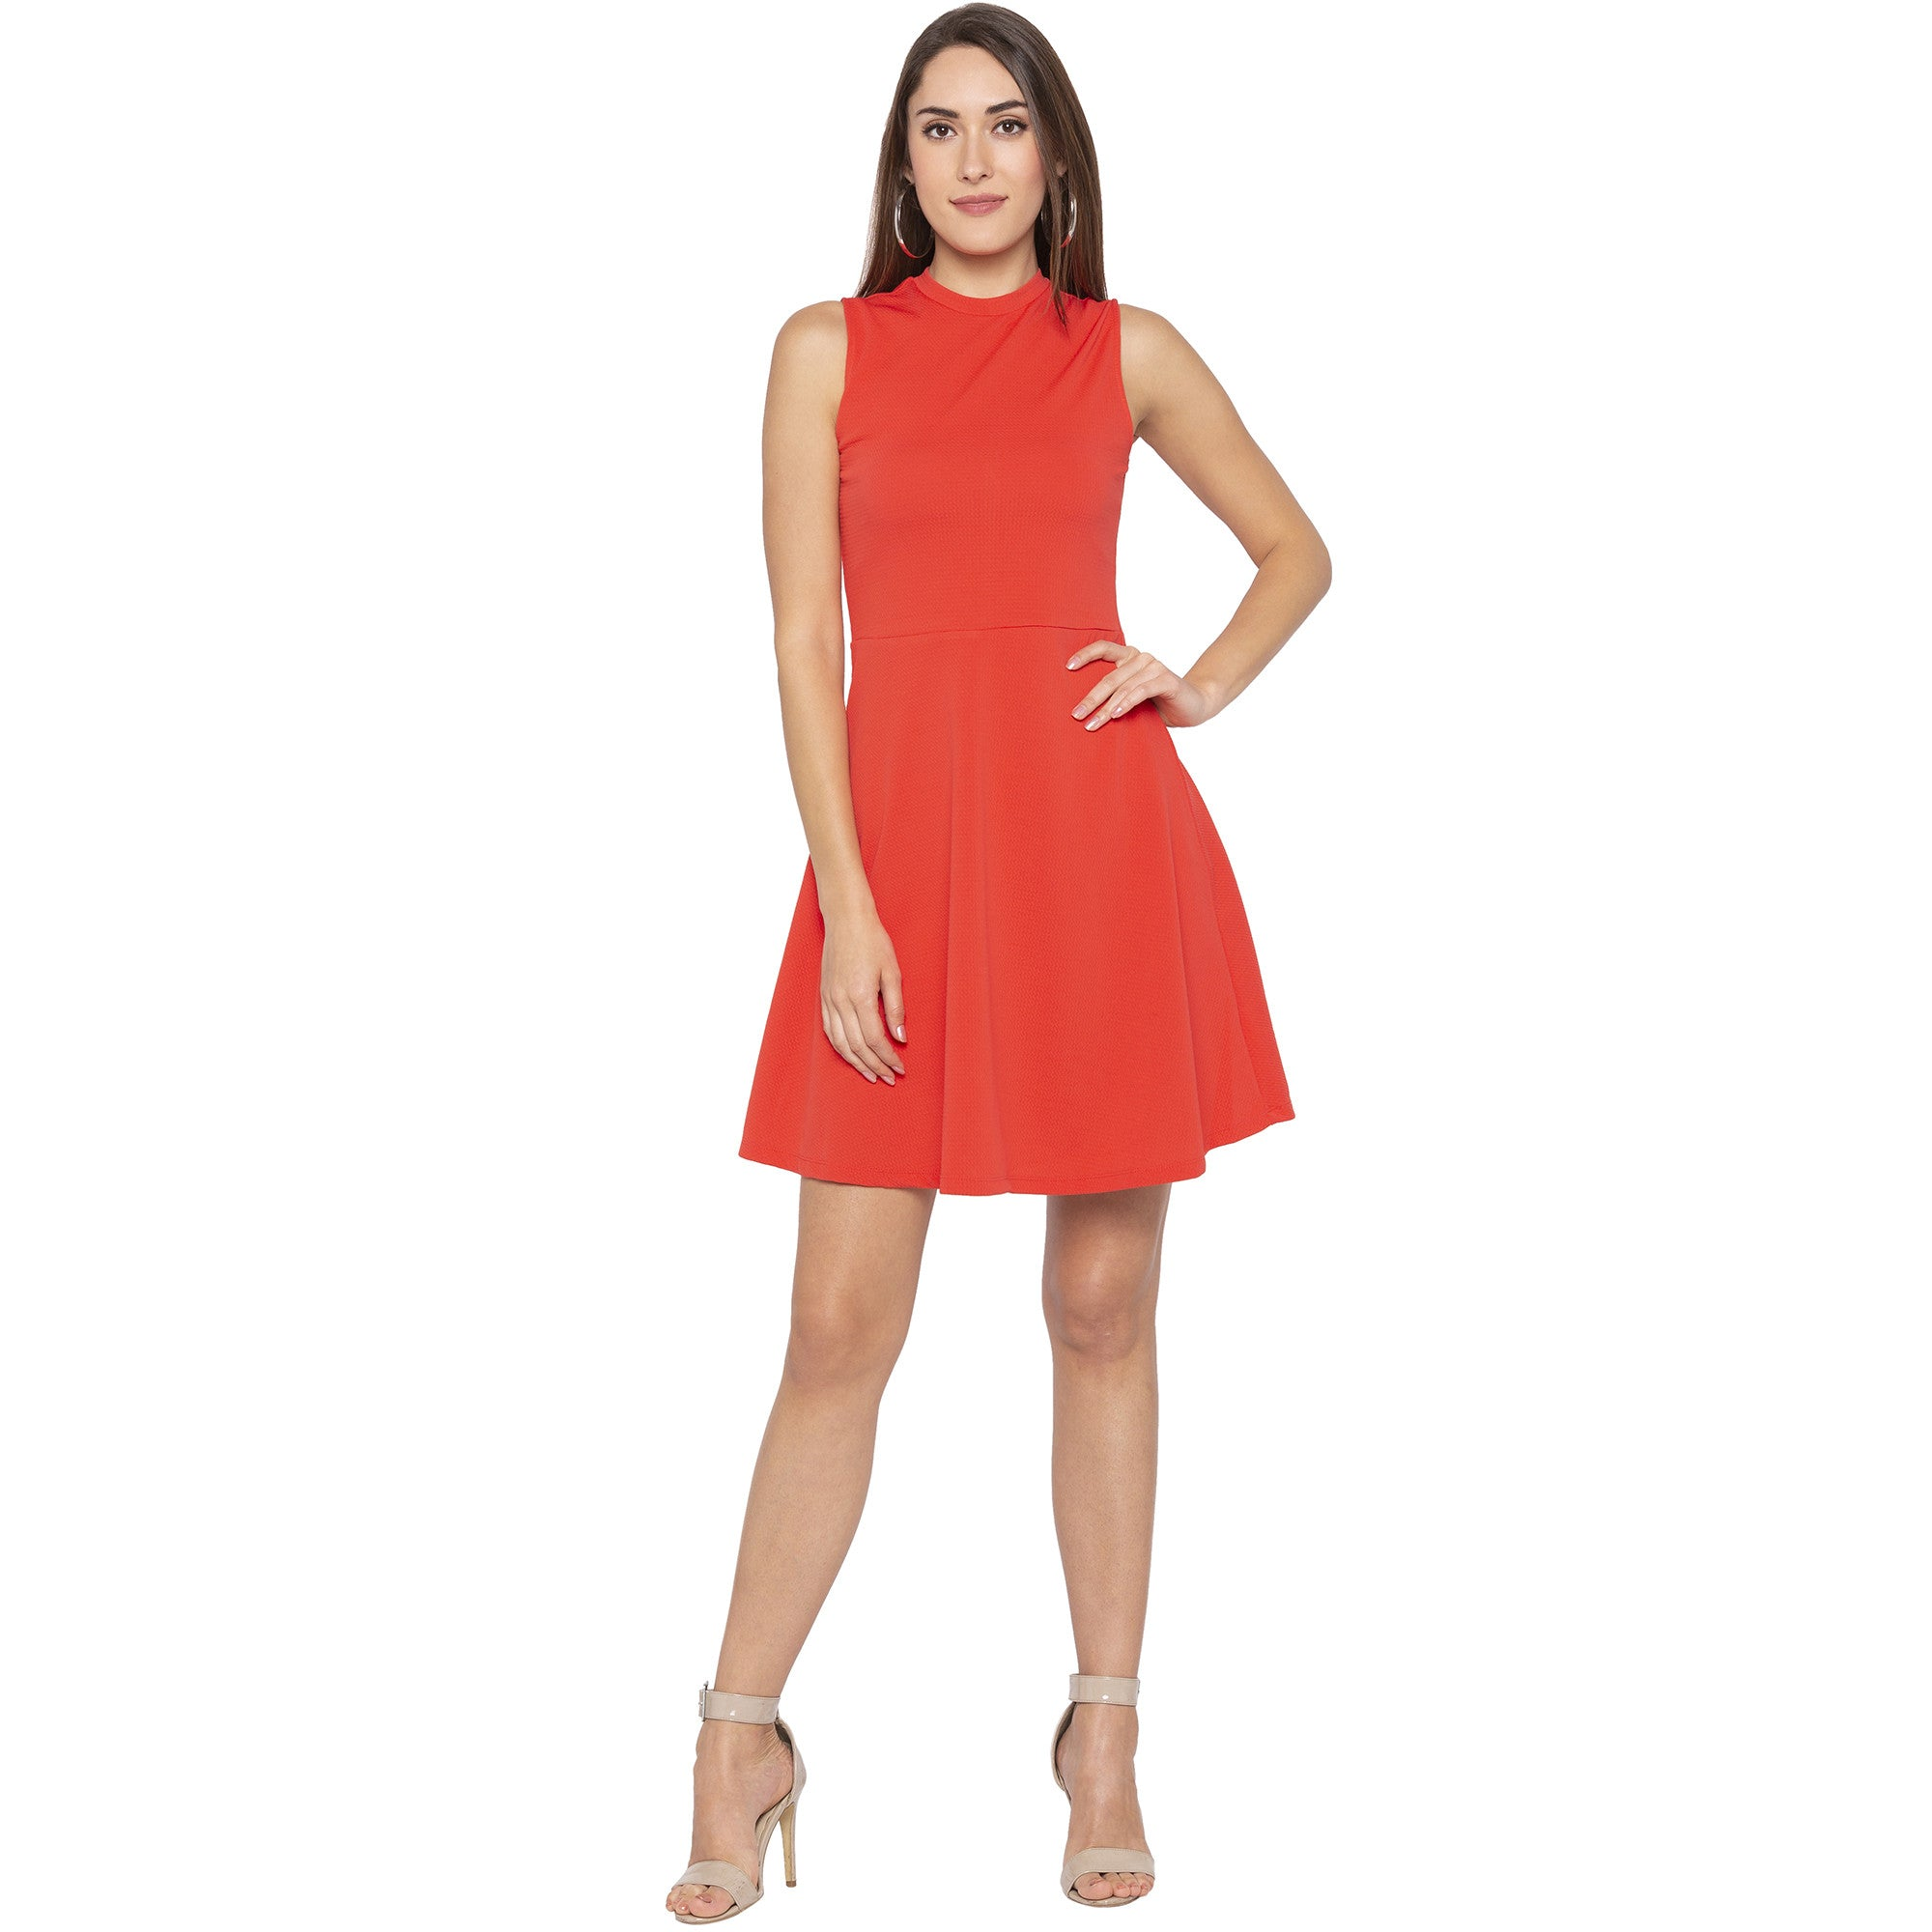 Party Coral Color Solid Fit and Flare Dress-1